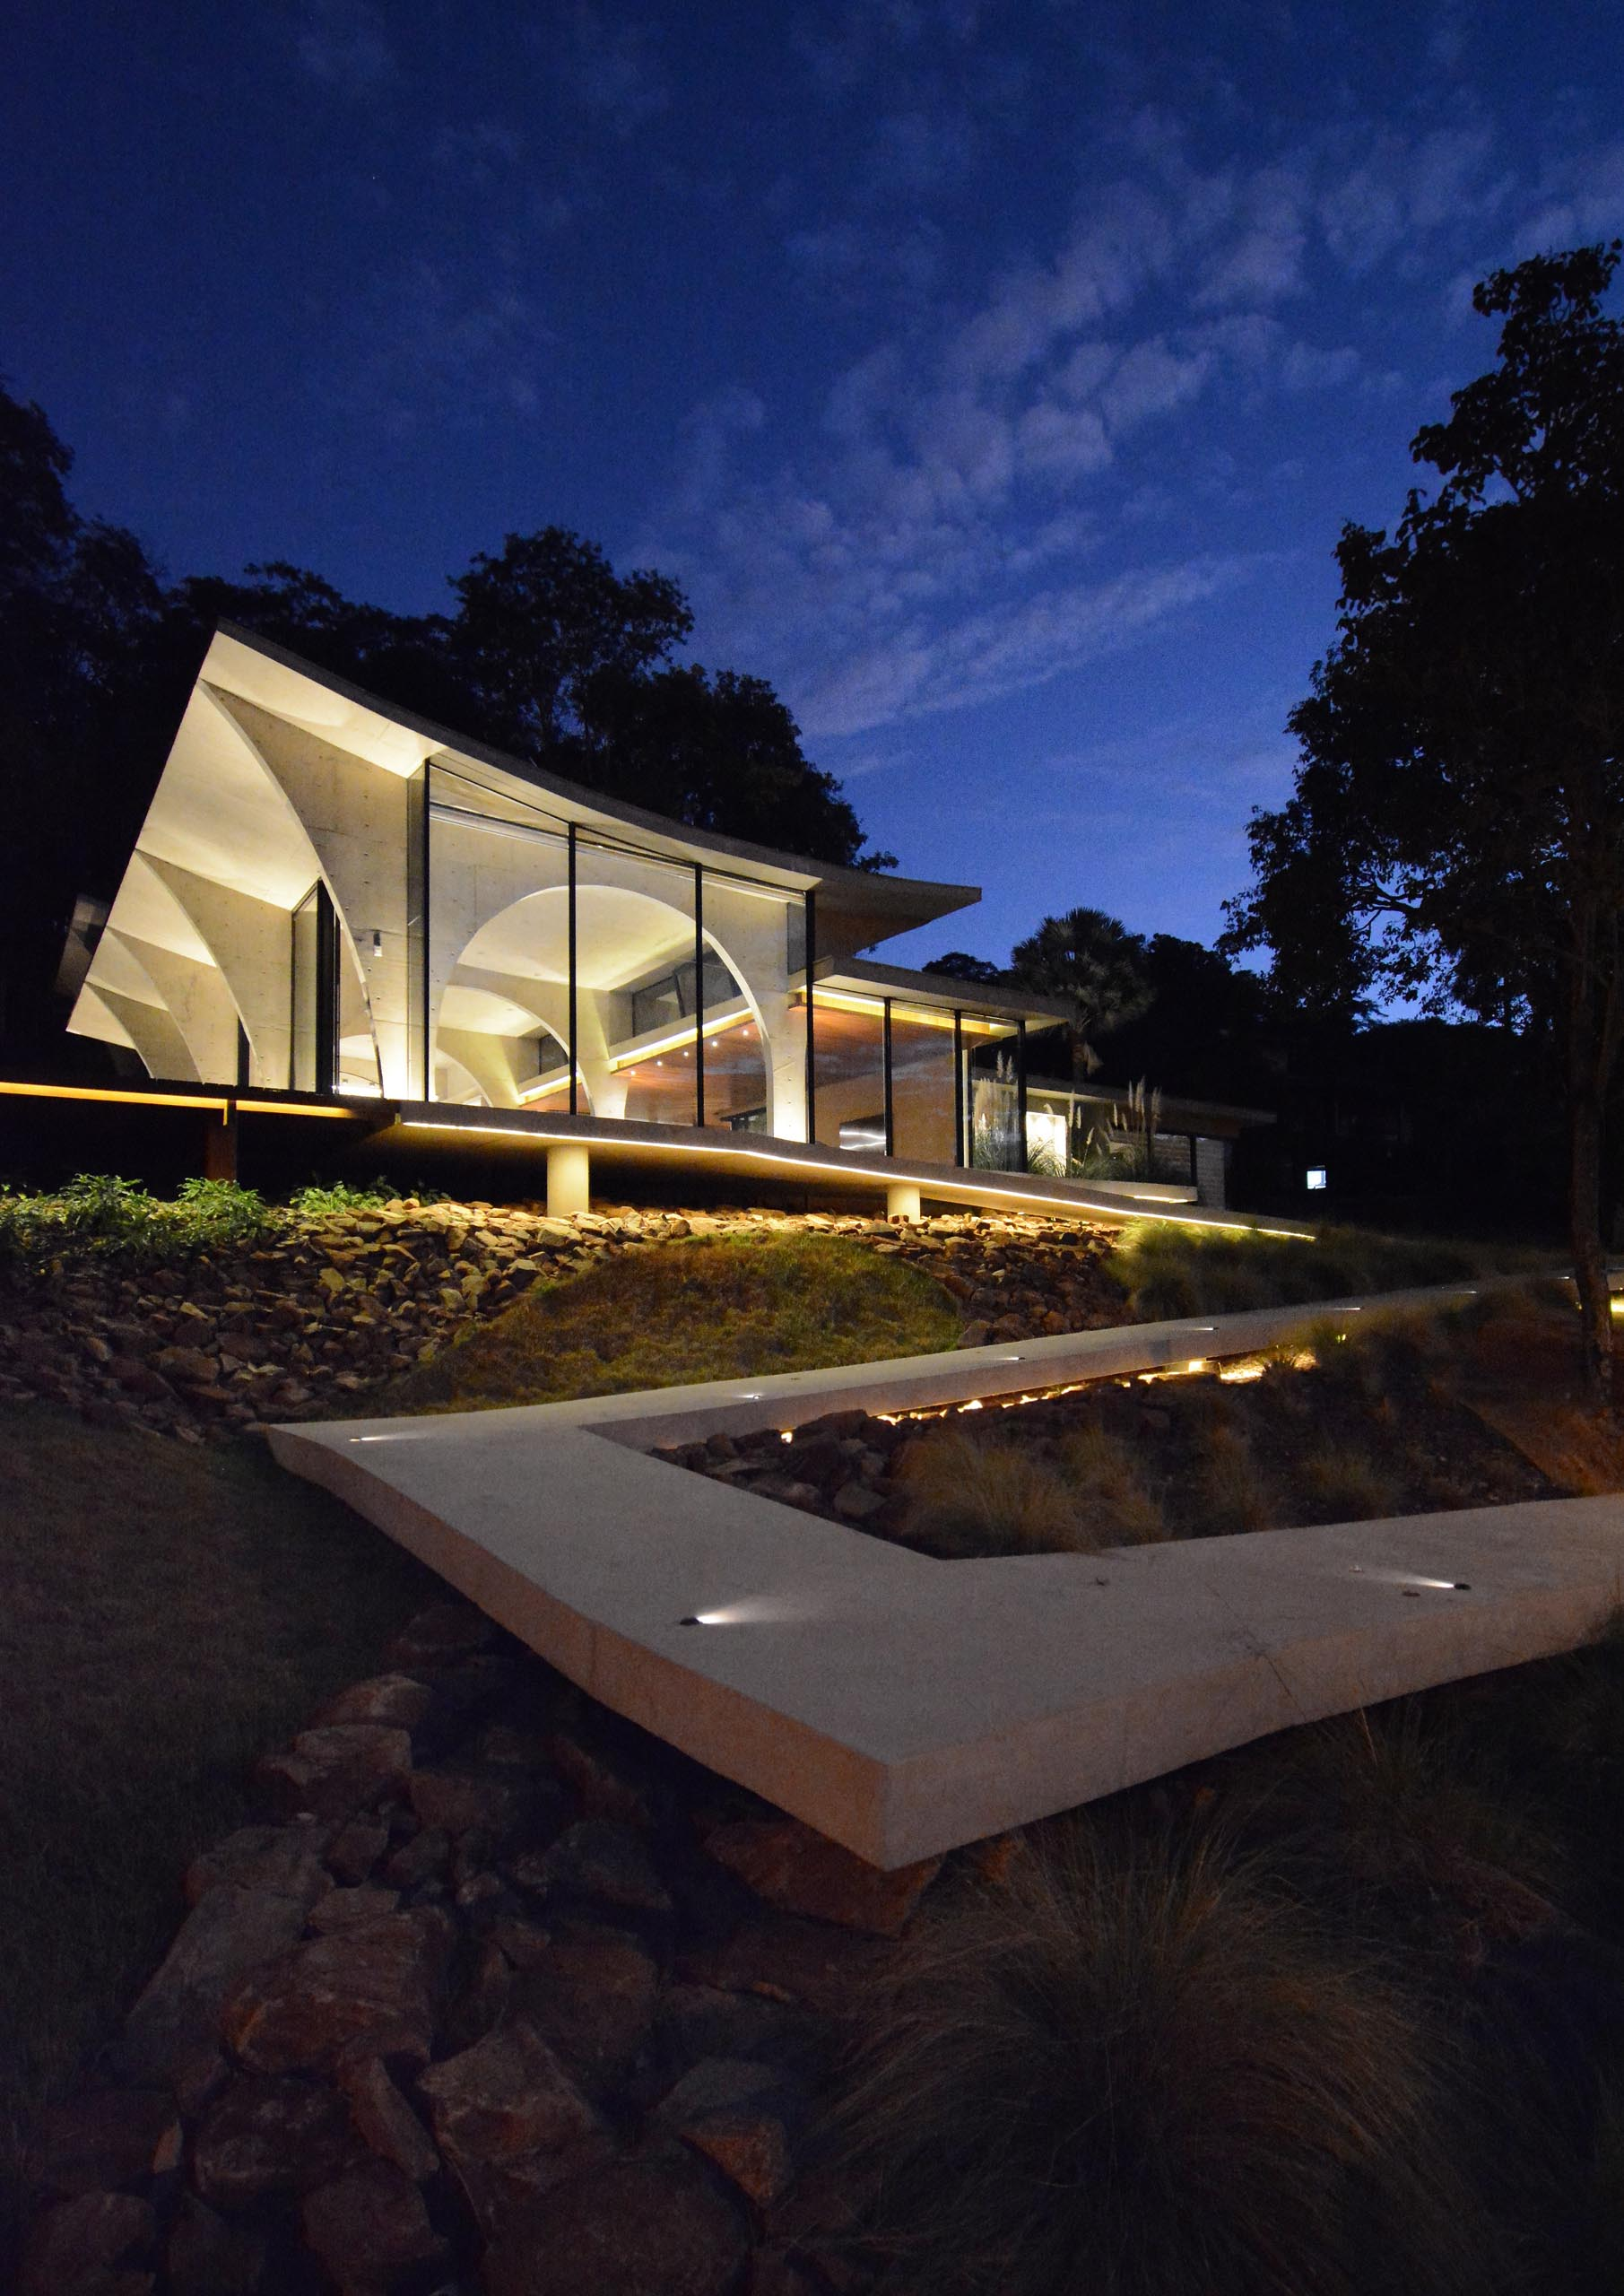 This modern concrete home features numerous arches, which are especially visible at night as the interior light highlights the curves.